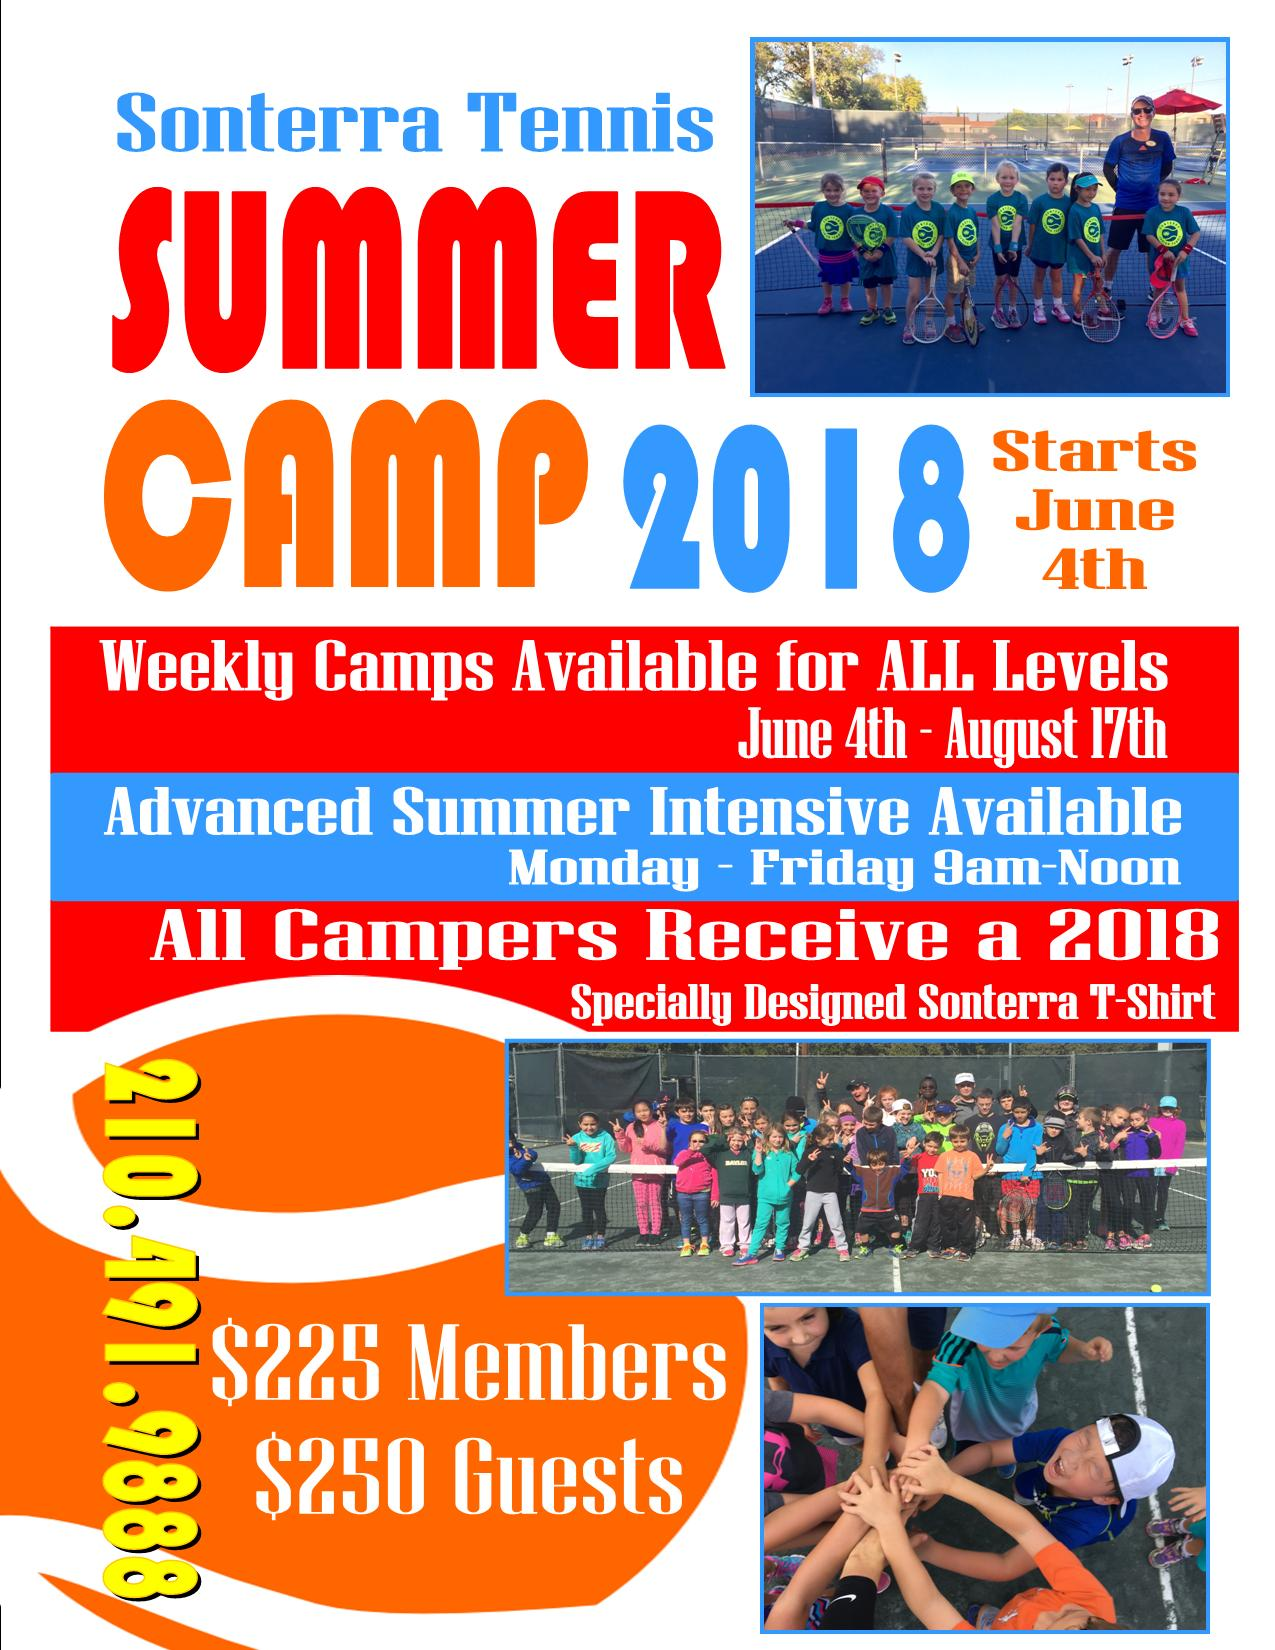 2018 Summer Tennis Camp